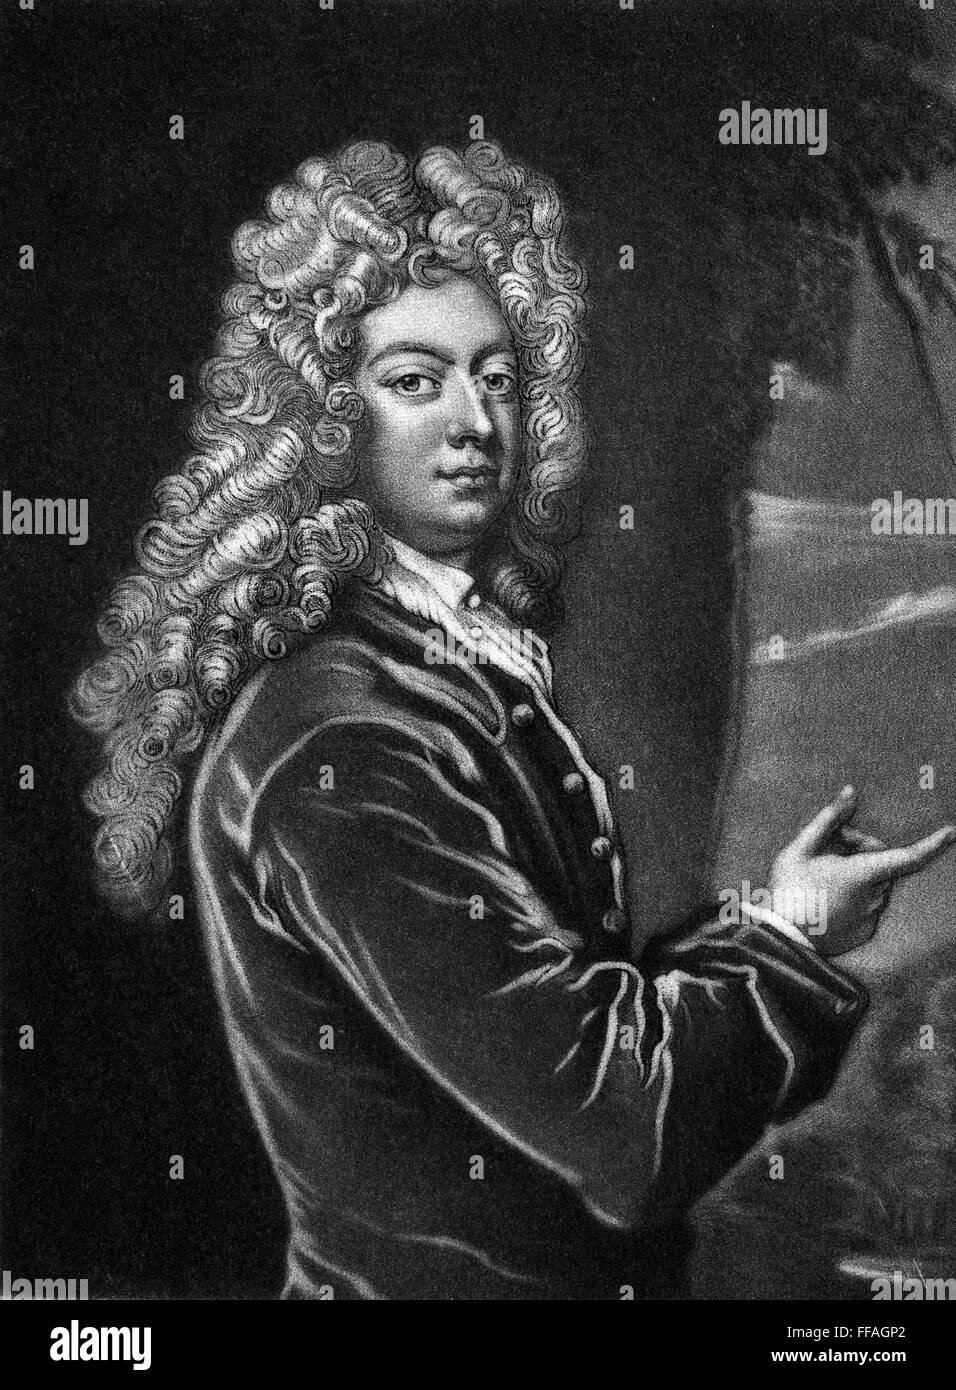 William Congreve as a dramatist